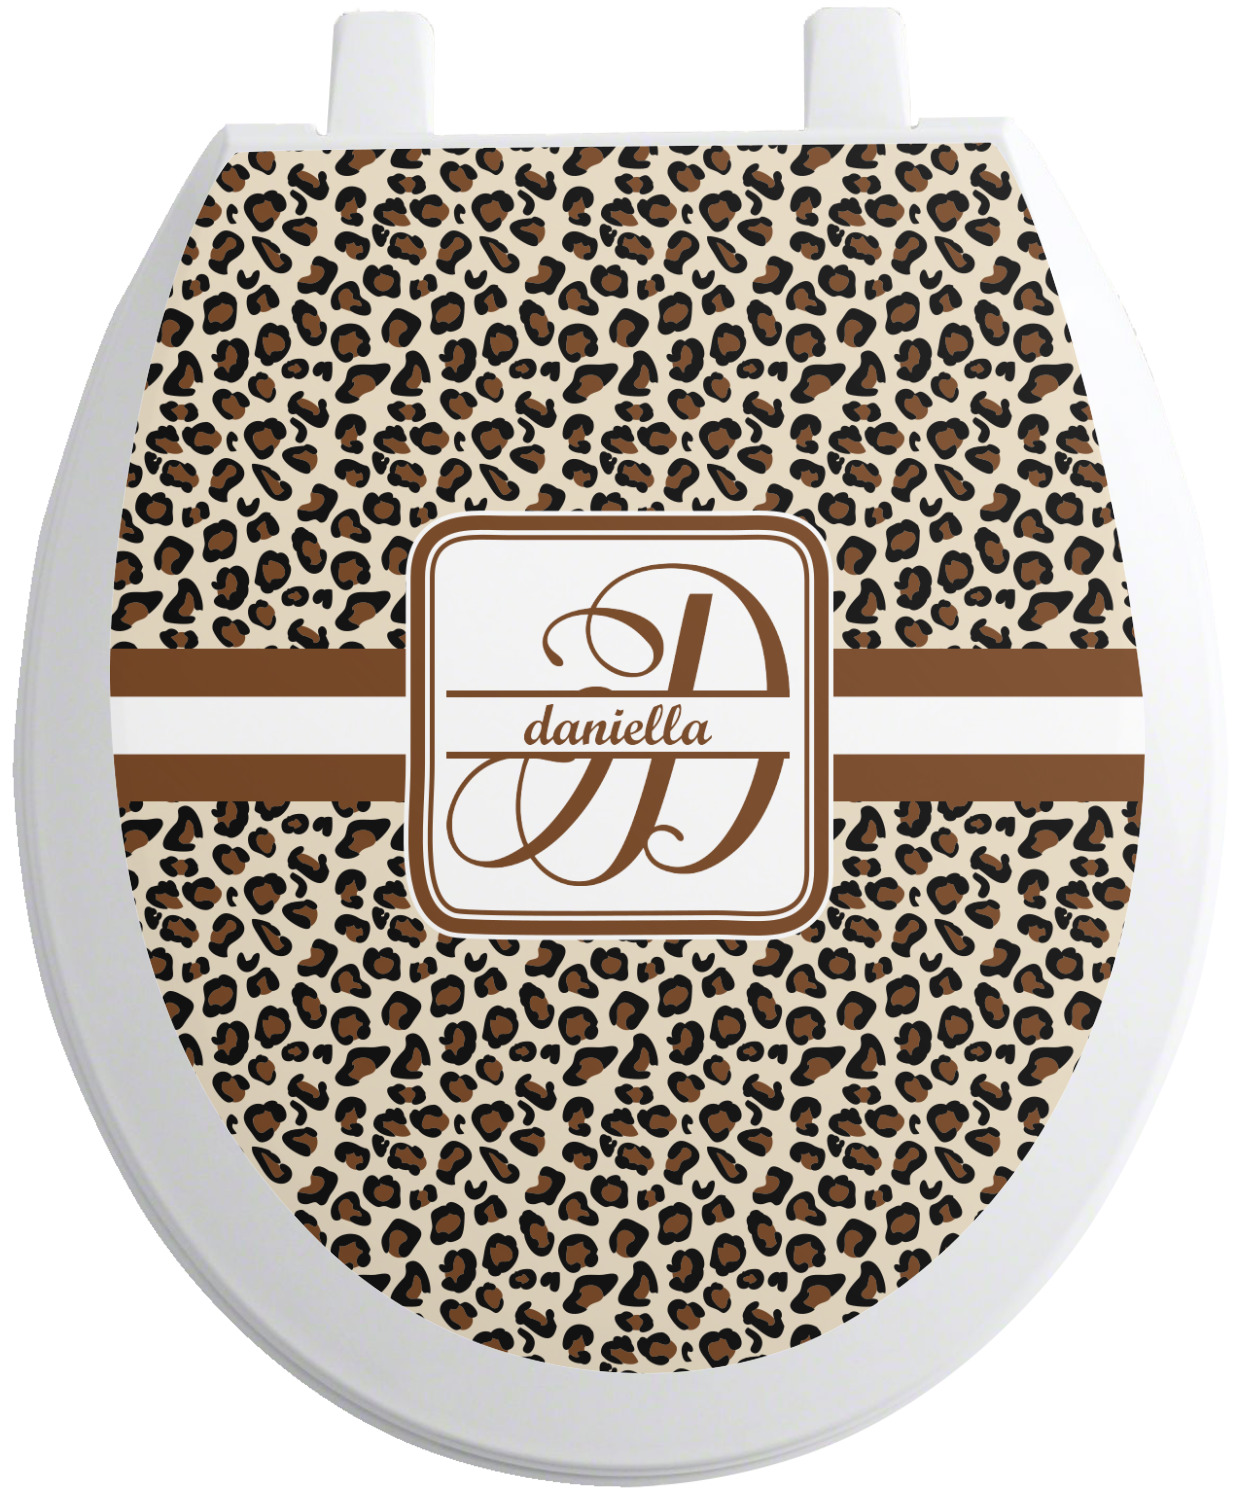 Admirable Leopard Print Toilet Seat Decal Personalized Theyellowbook Wood Chair Design Ideas Theyellowbookinfo